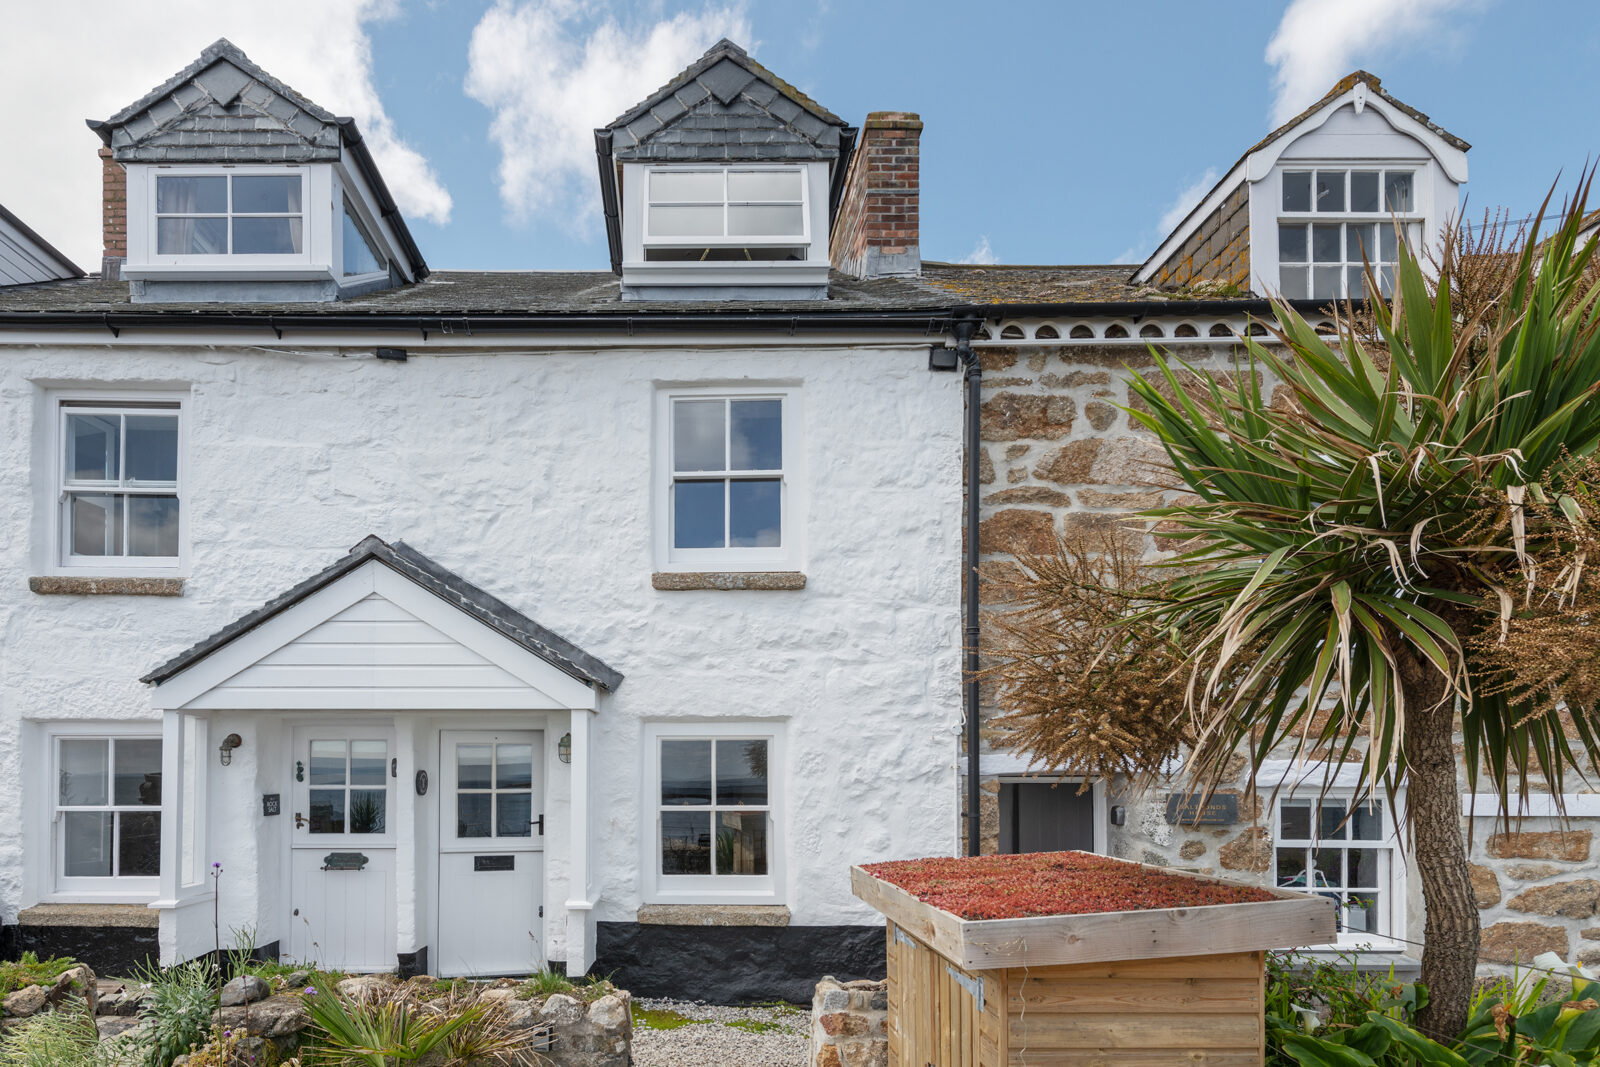 The fisherman's cottage in Mousehole, Cornwall